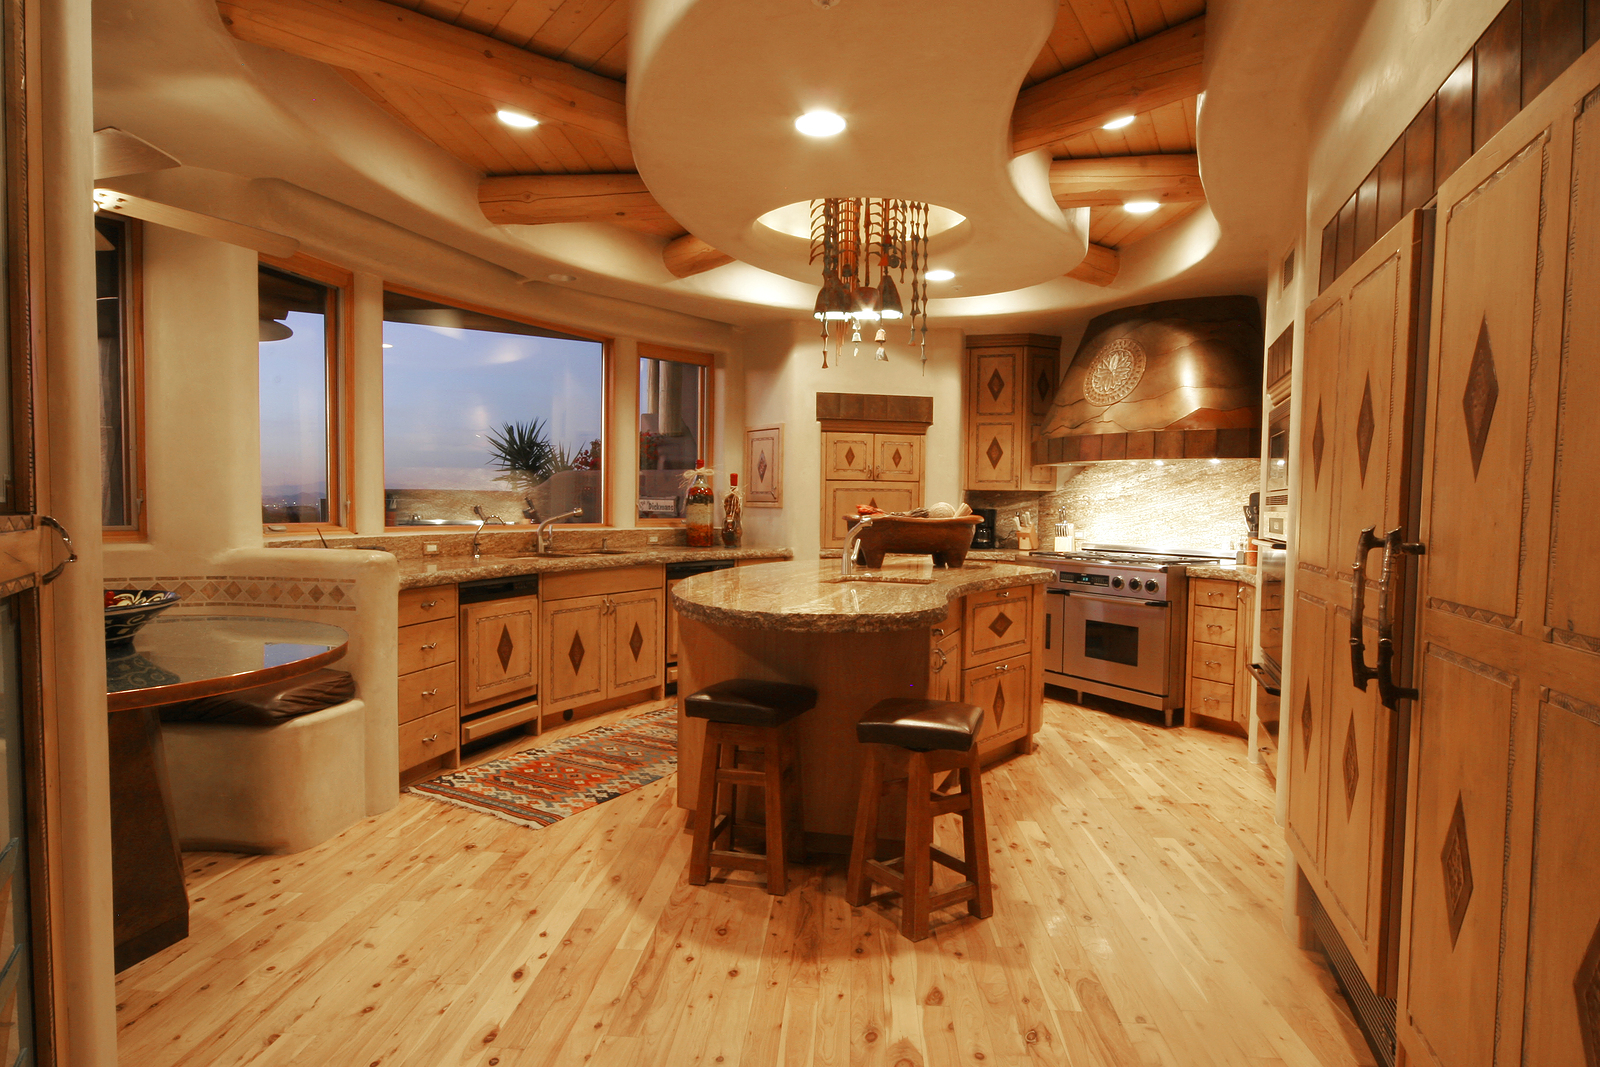 Best Small Kitchen Design with Island for Perfect ... on Best Small Kitchens  id=30318